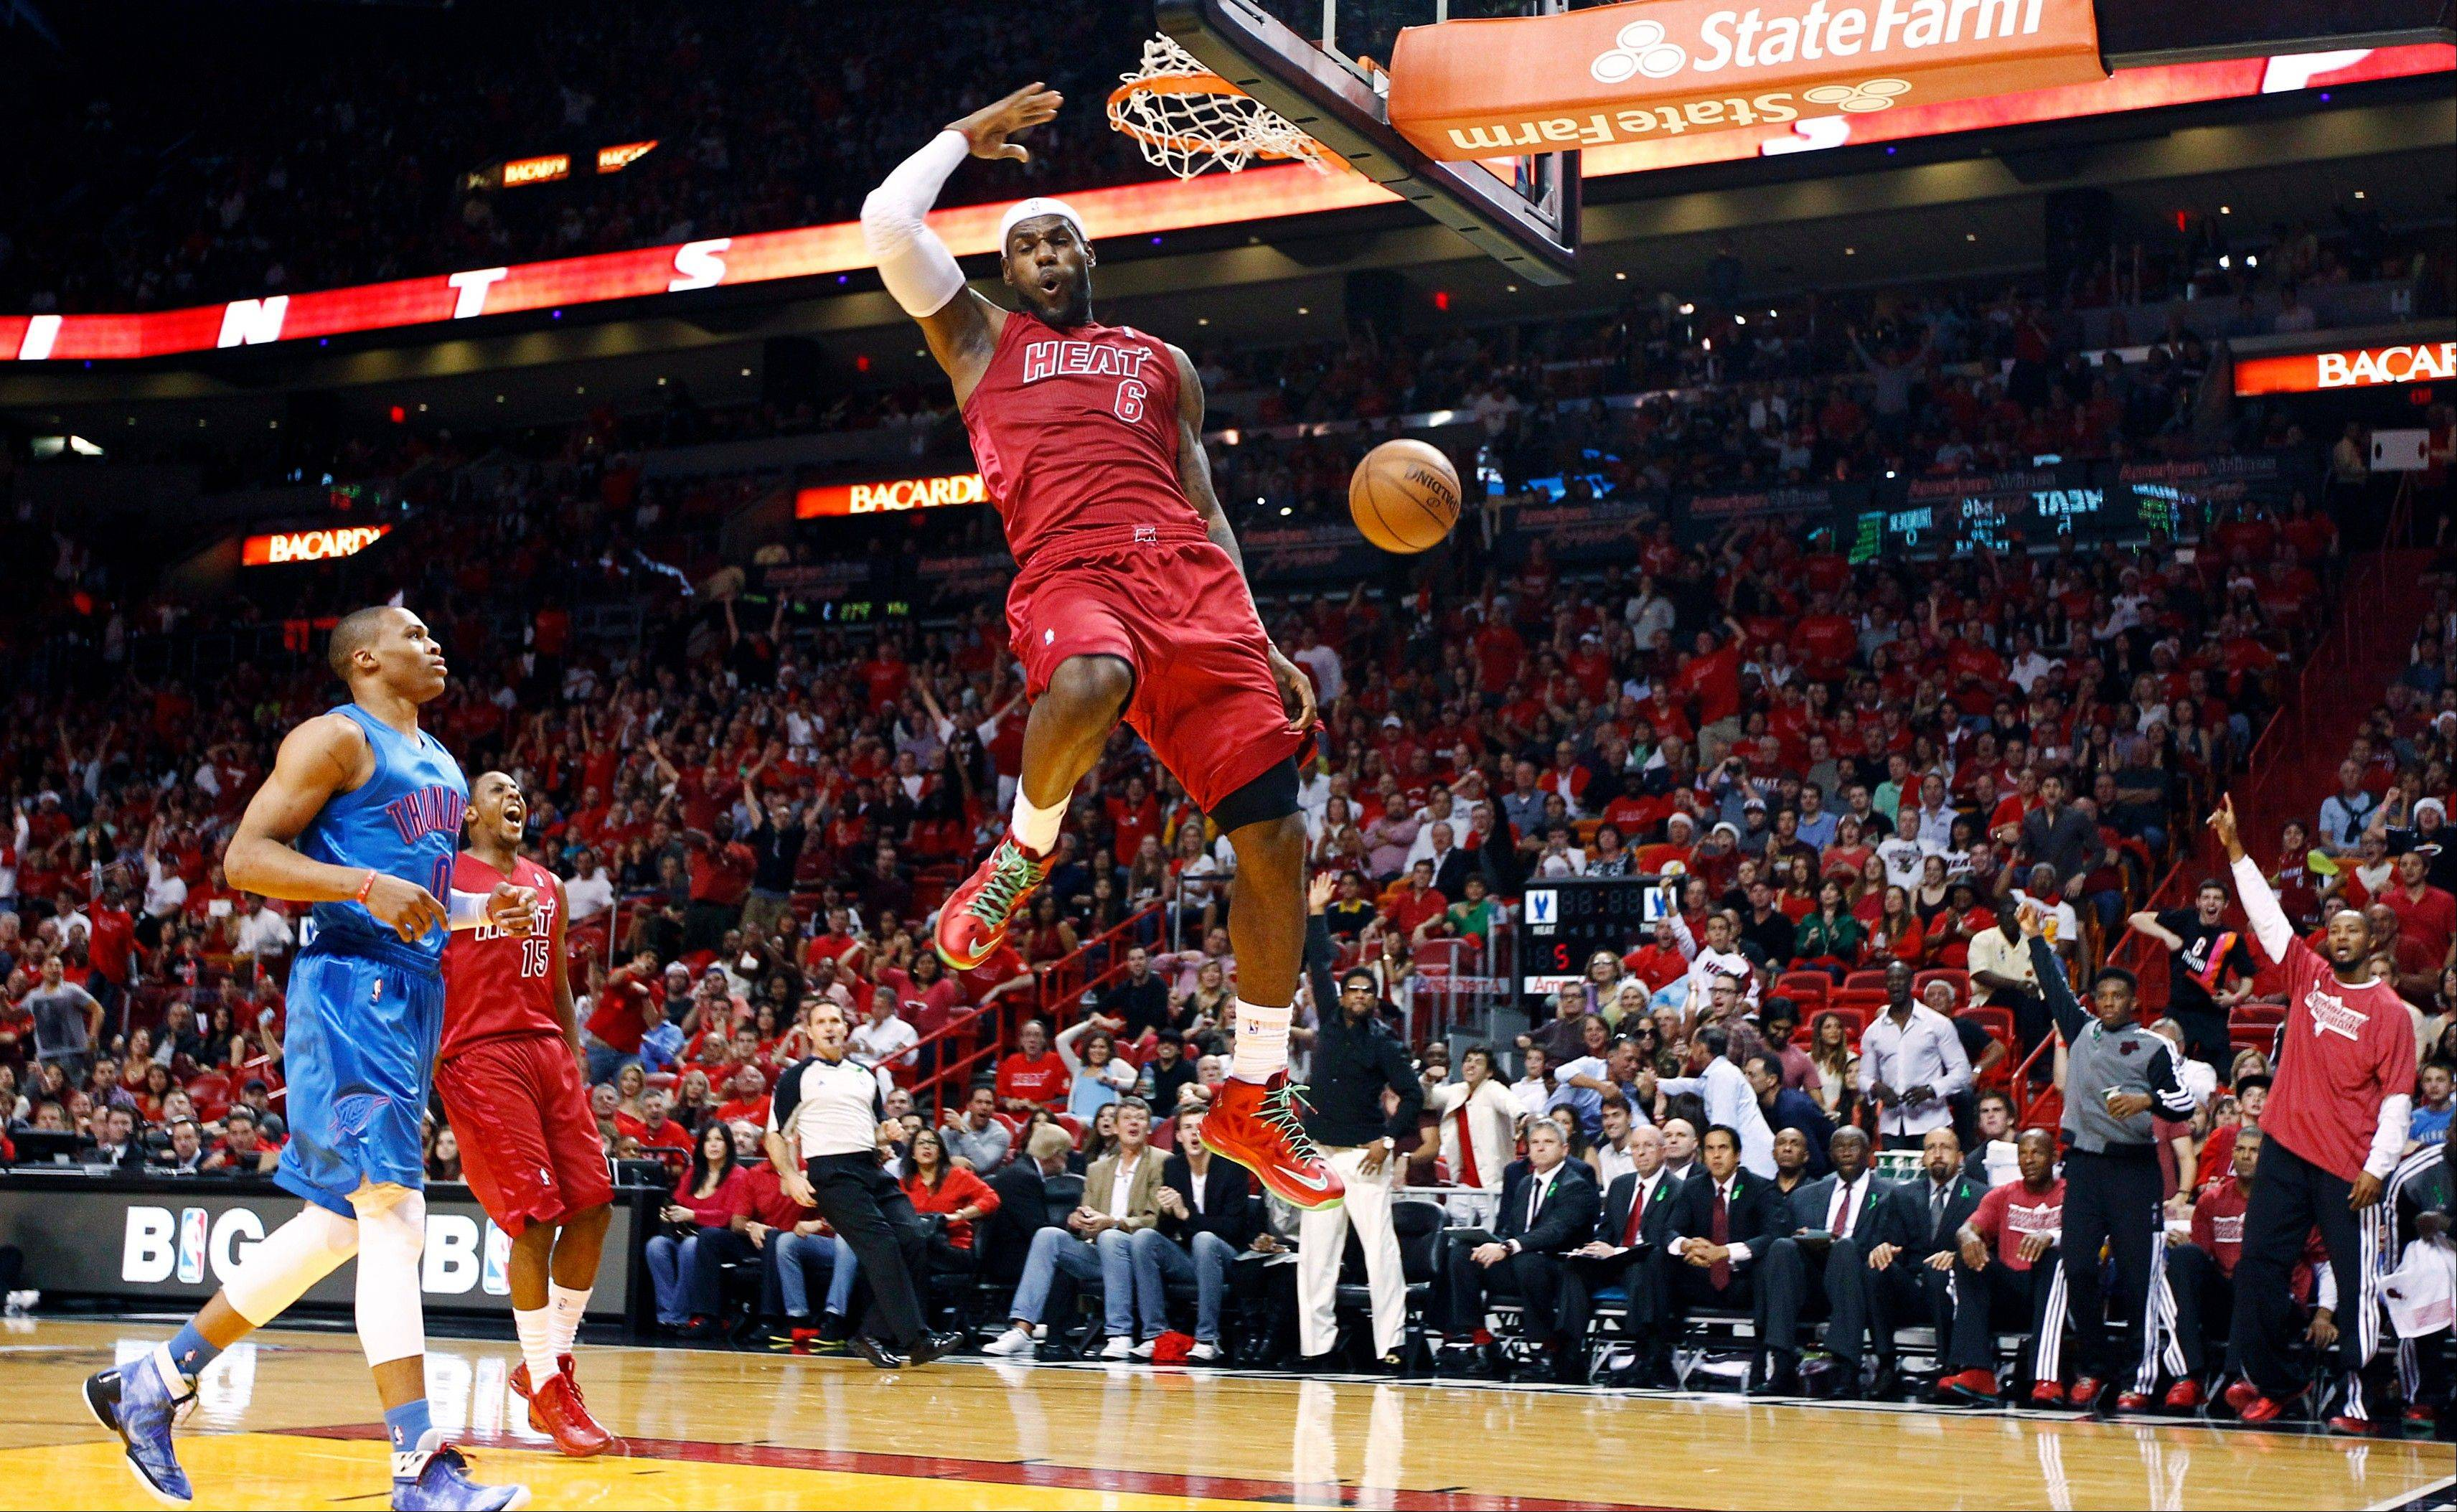 Miami Heat forward LeBron James dunks as Oklahoma City Thunder�s Russell Westbrook (0) and Heat�s Mario Chalmers watch Tuesday during the first half in Miami.